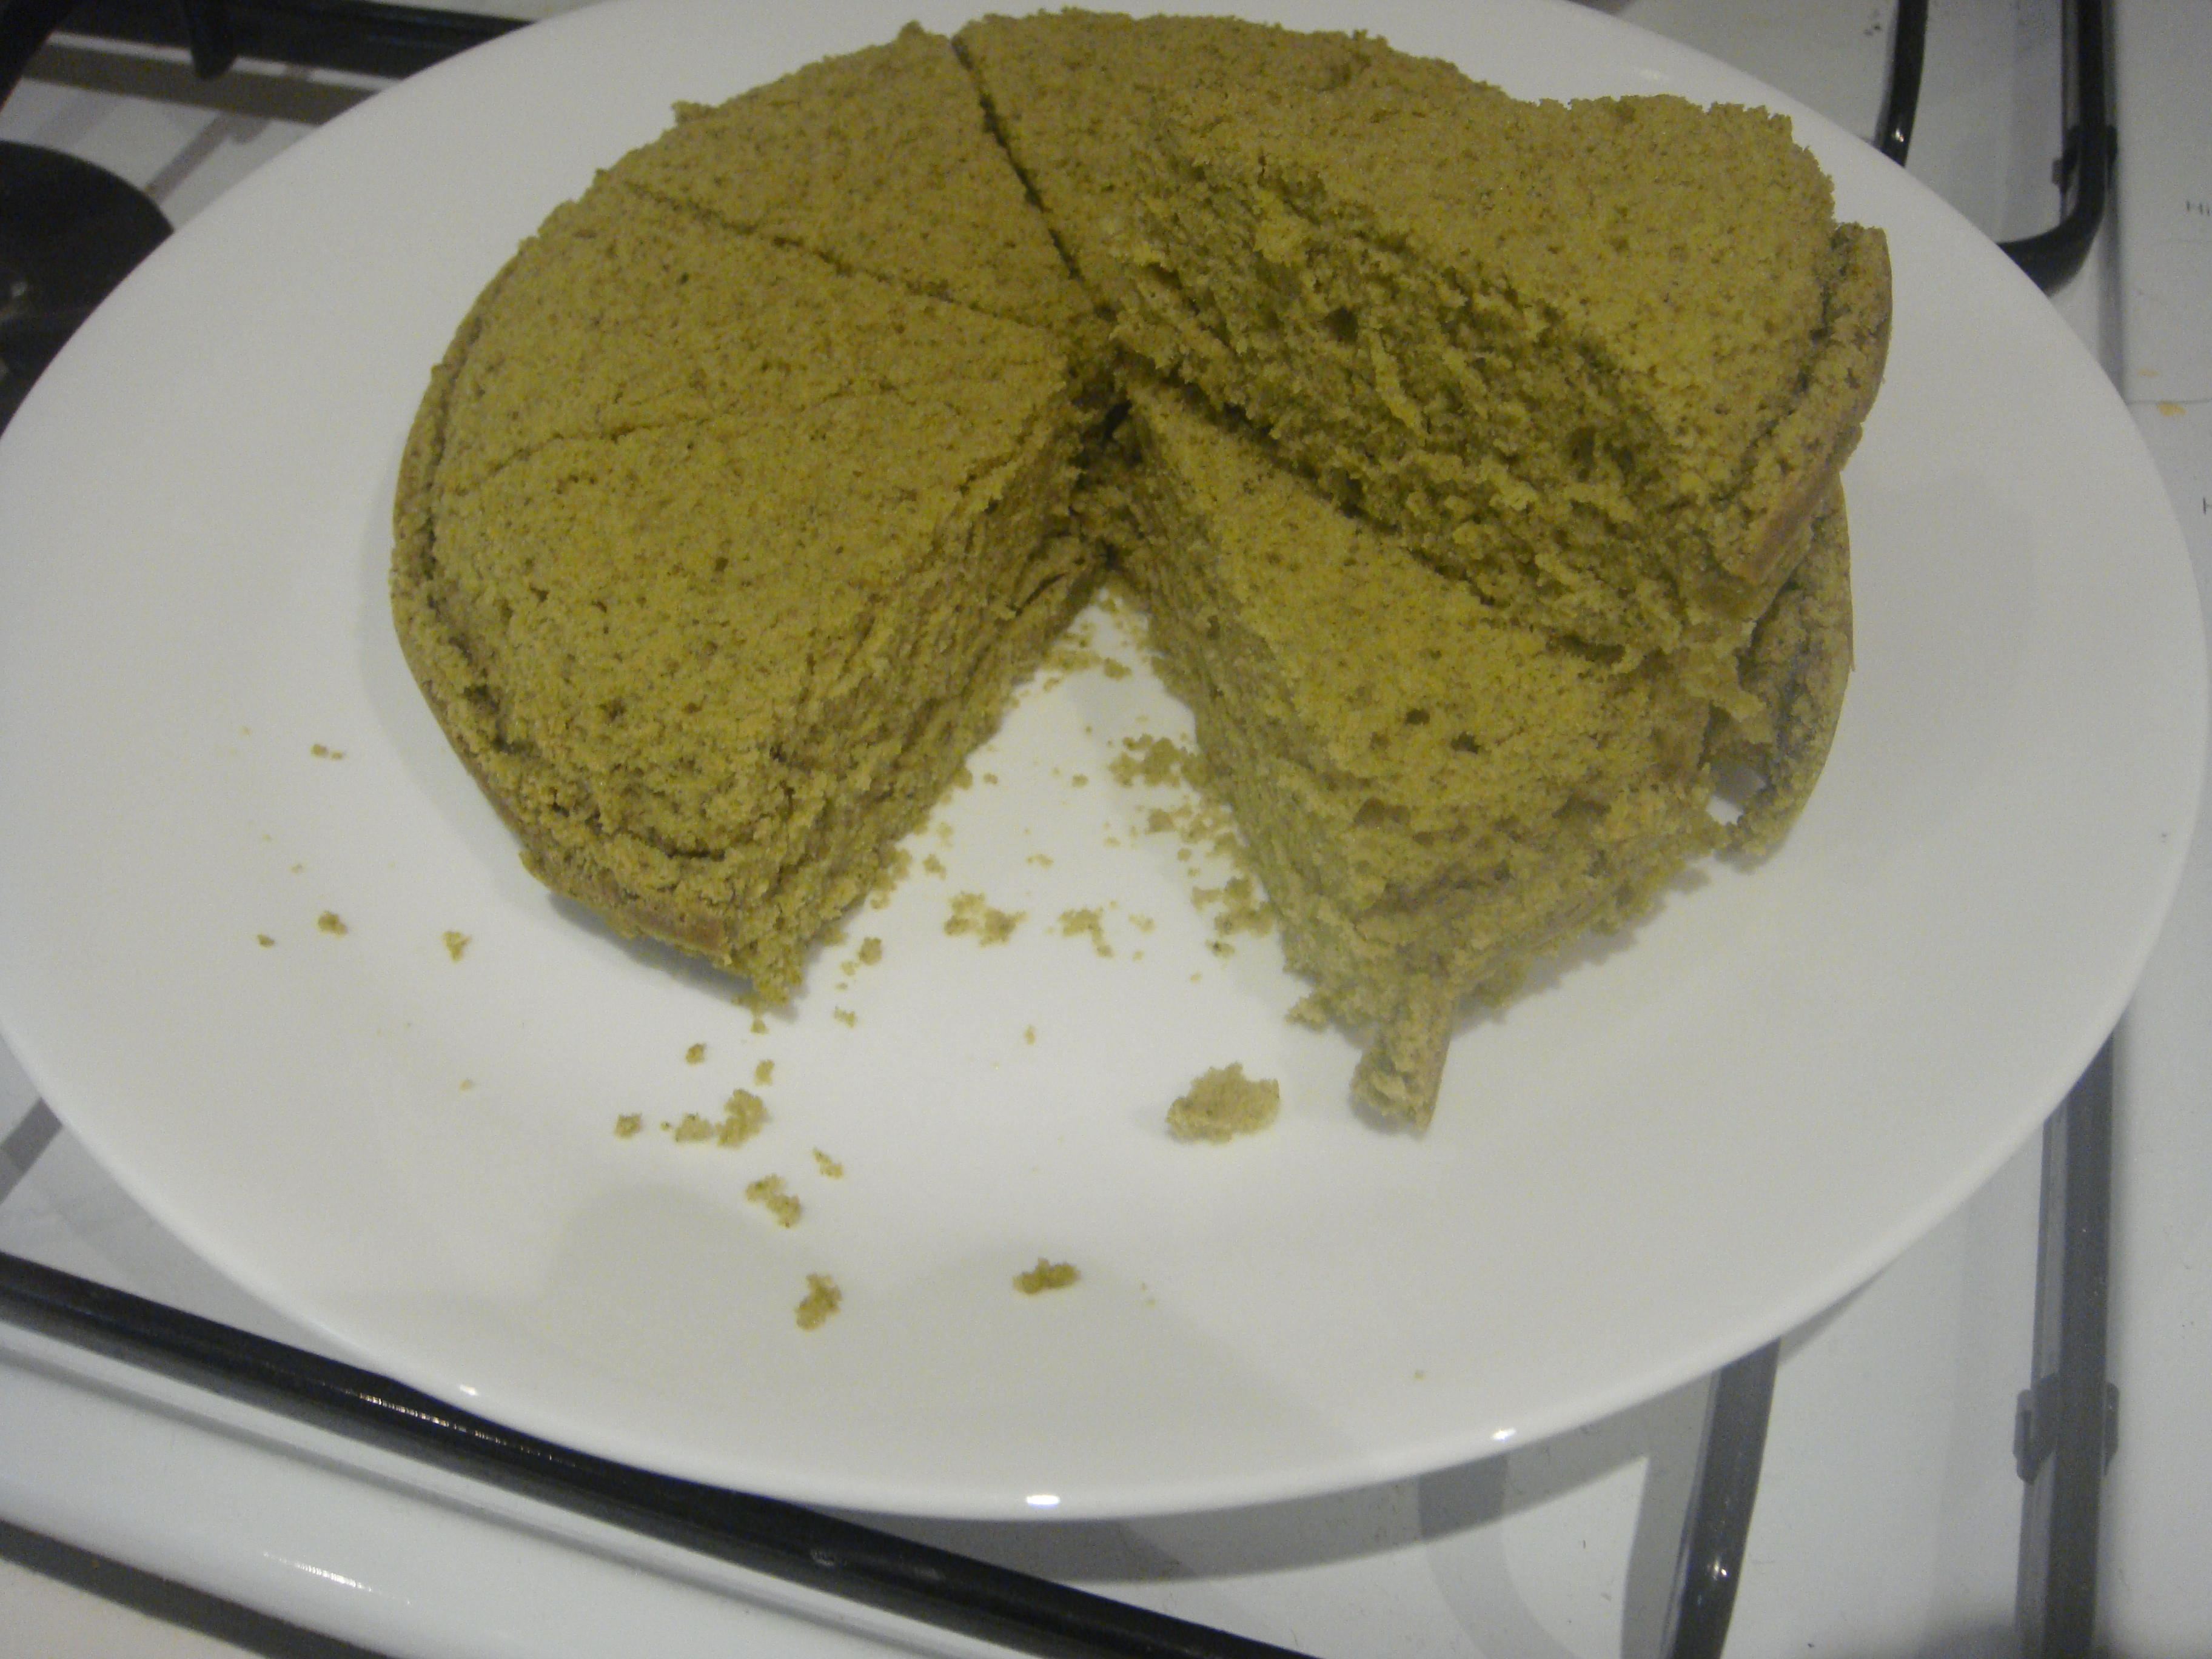 Cake Recipe In A Rice Cooker: Matcha Rice-cooker Cake